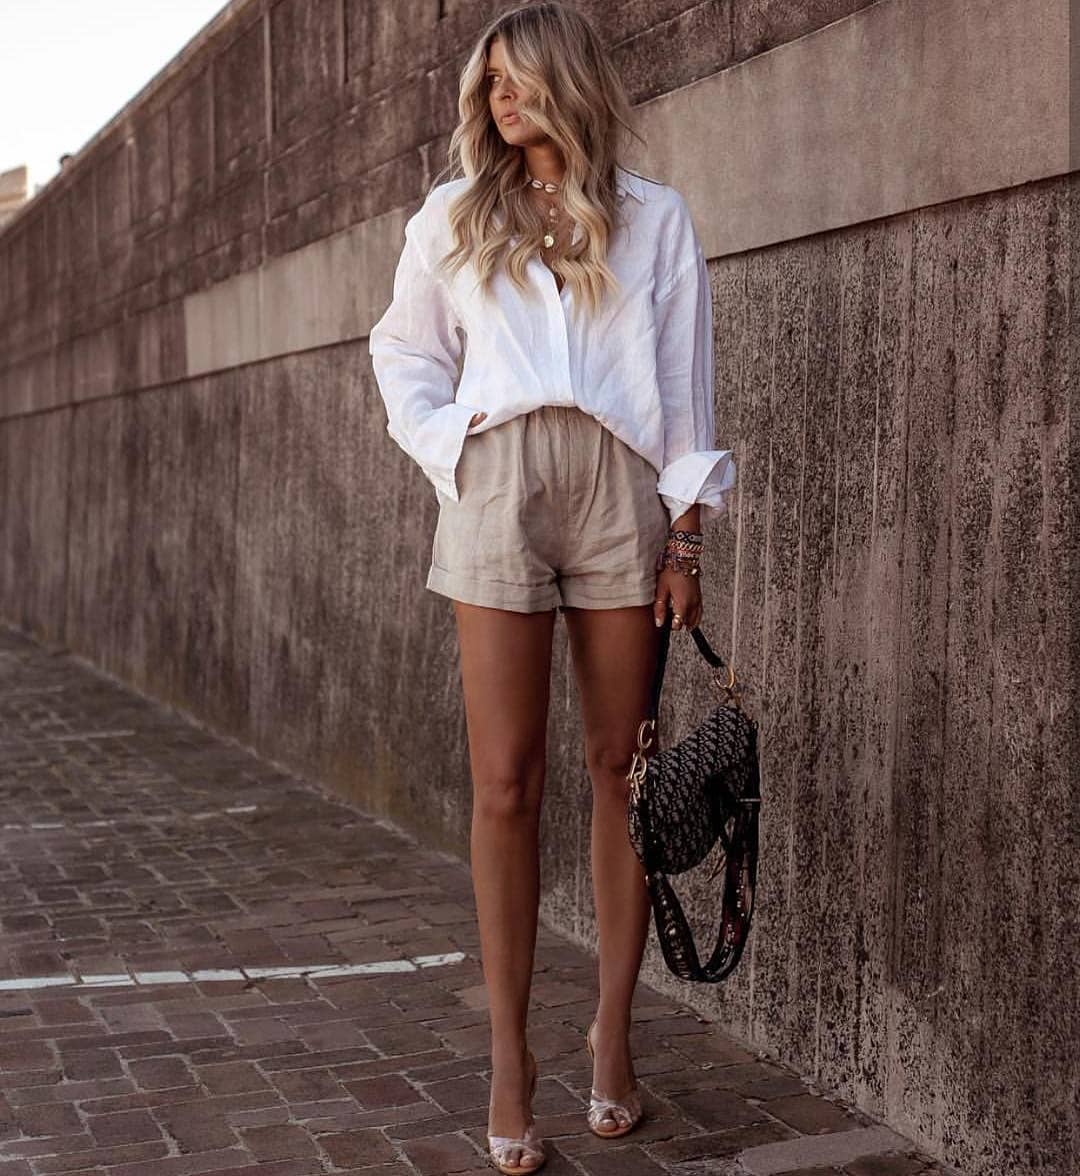 Oversized Shirt In White Tucked In Khaki Desert Shorts For Summer 2019